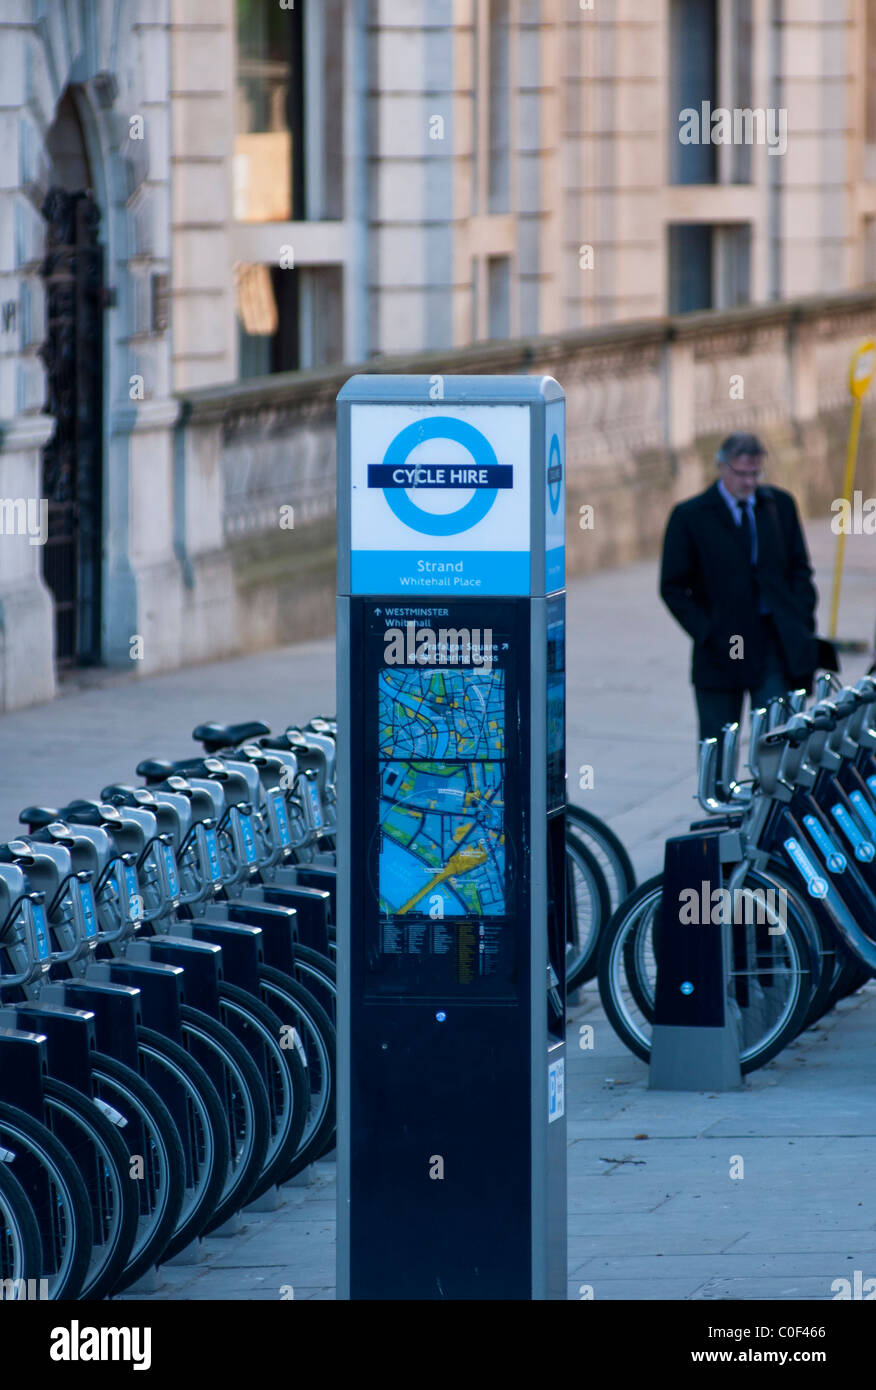 Pay station and rows of bikes for the new Mayoral TFL initiative London bicycles for hire, seen in Knightsbridge, - Stock Image